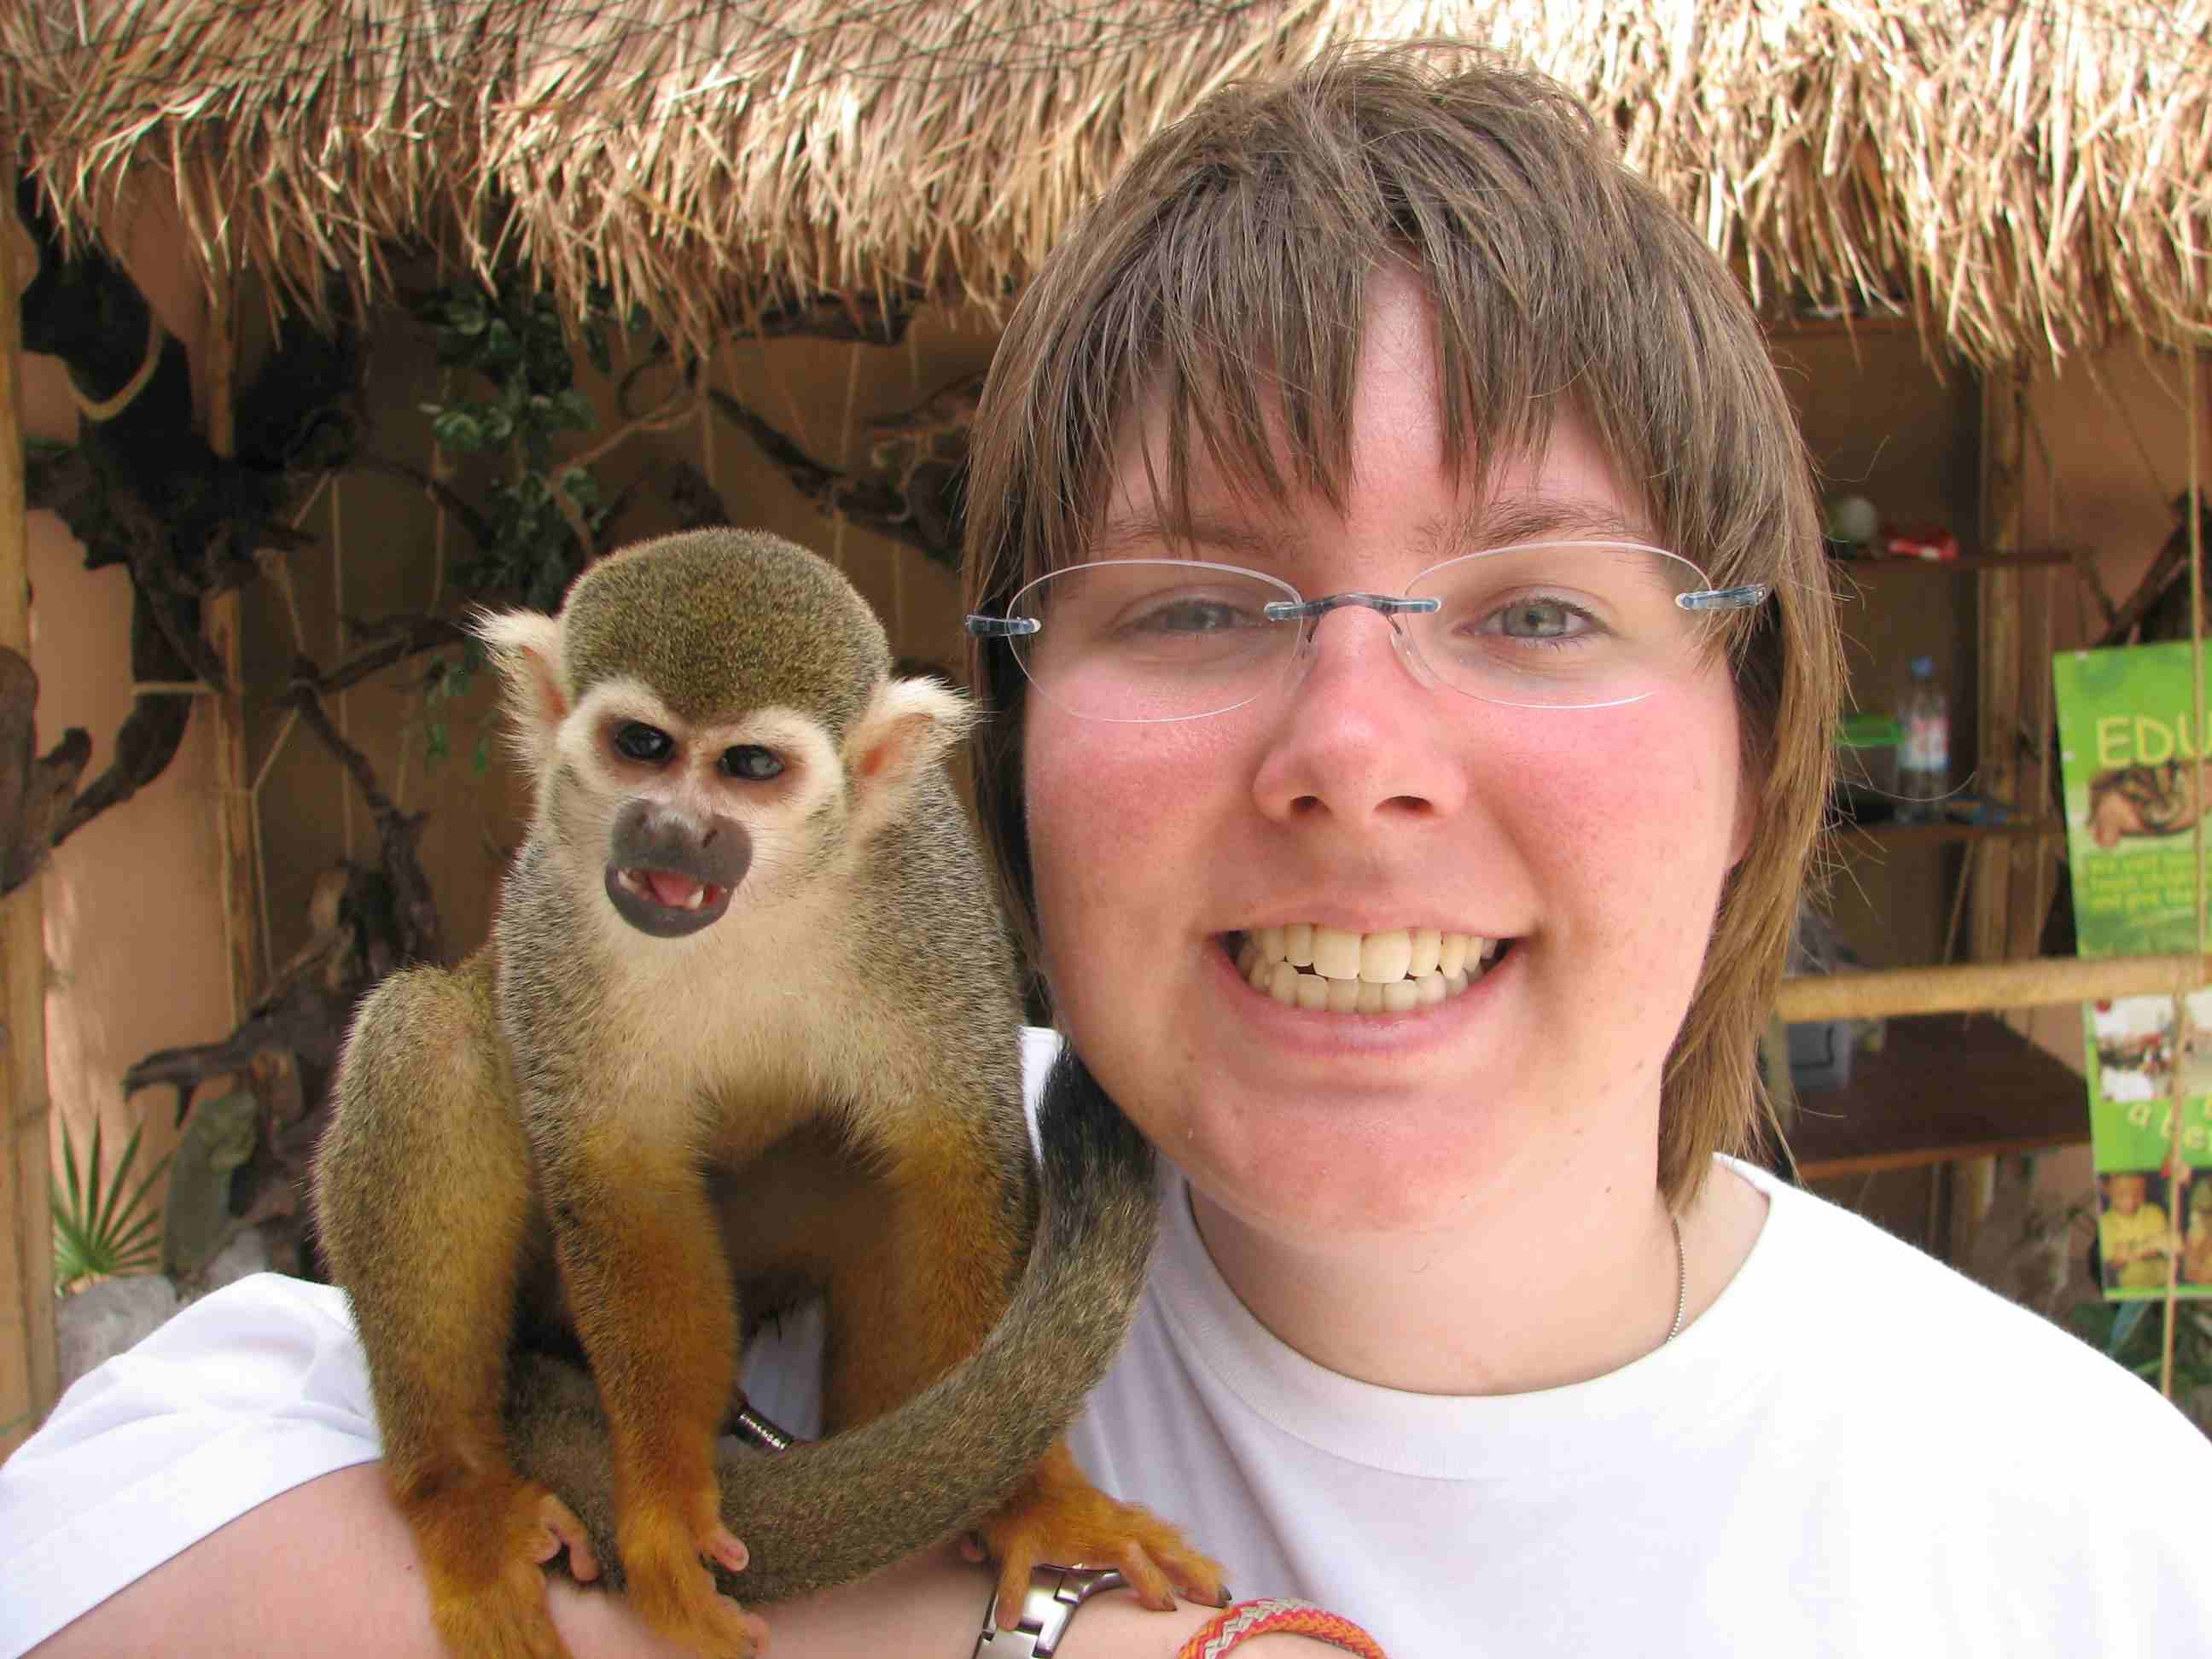 the monkey doesn't want any more freakin pictures